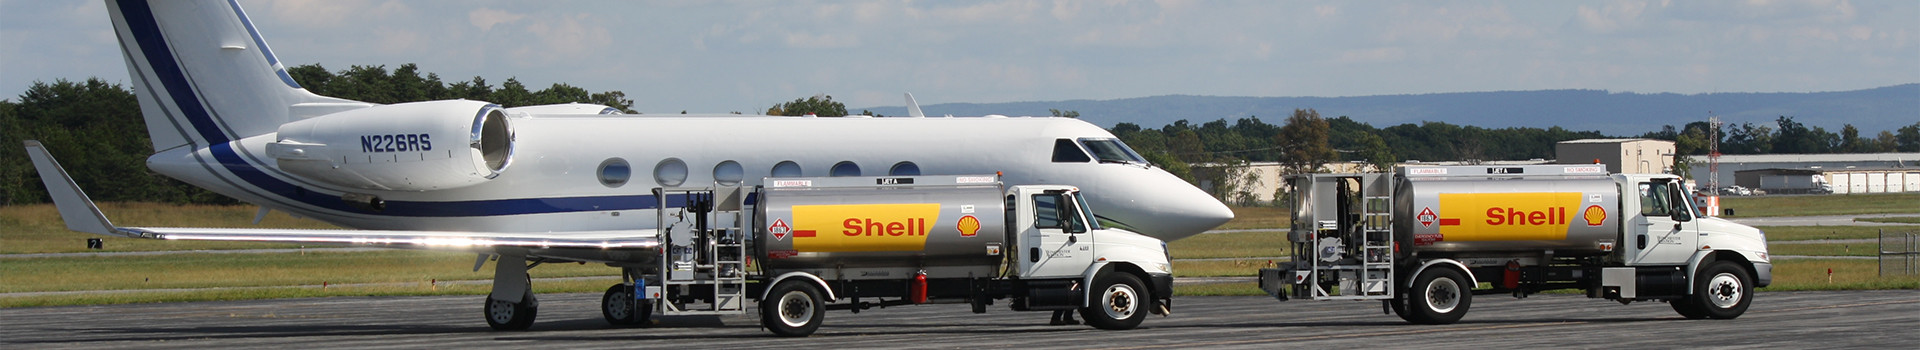 Fuel Trucks fueling a jet